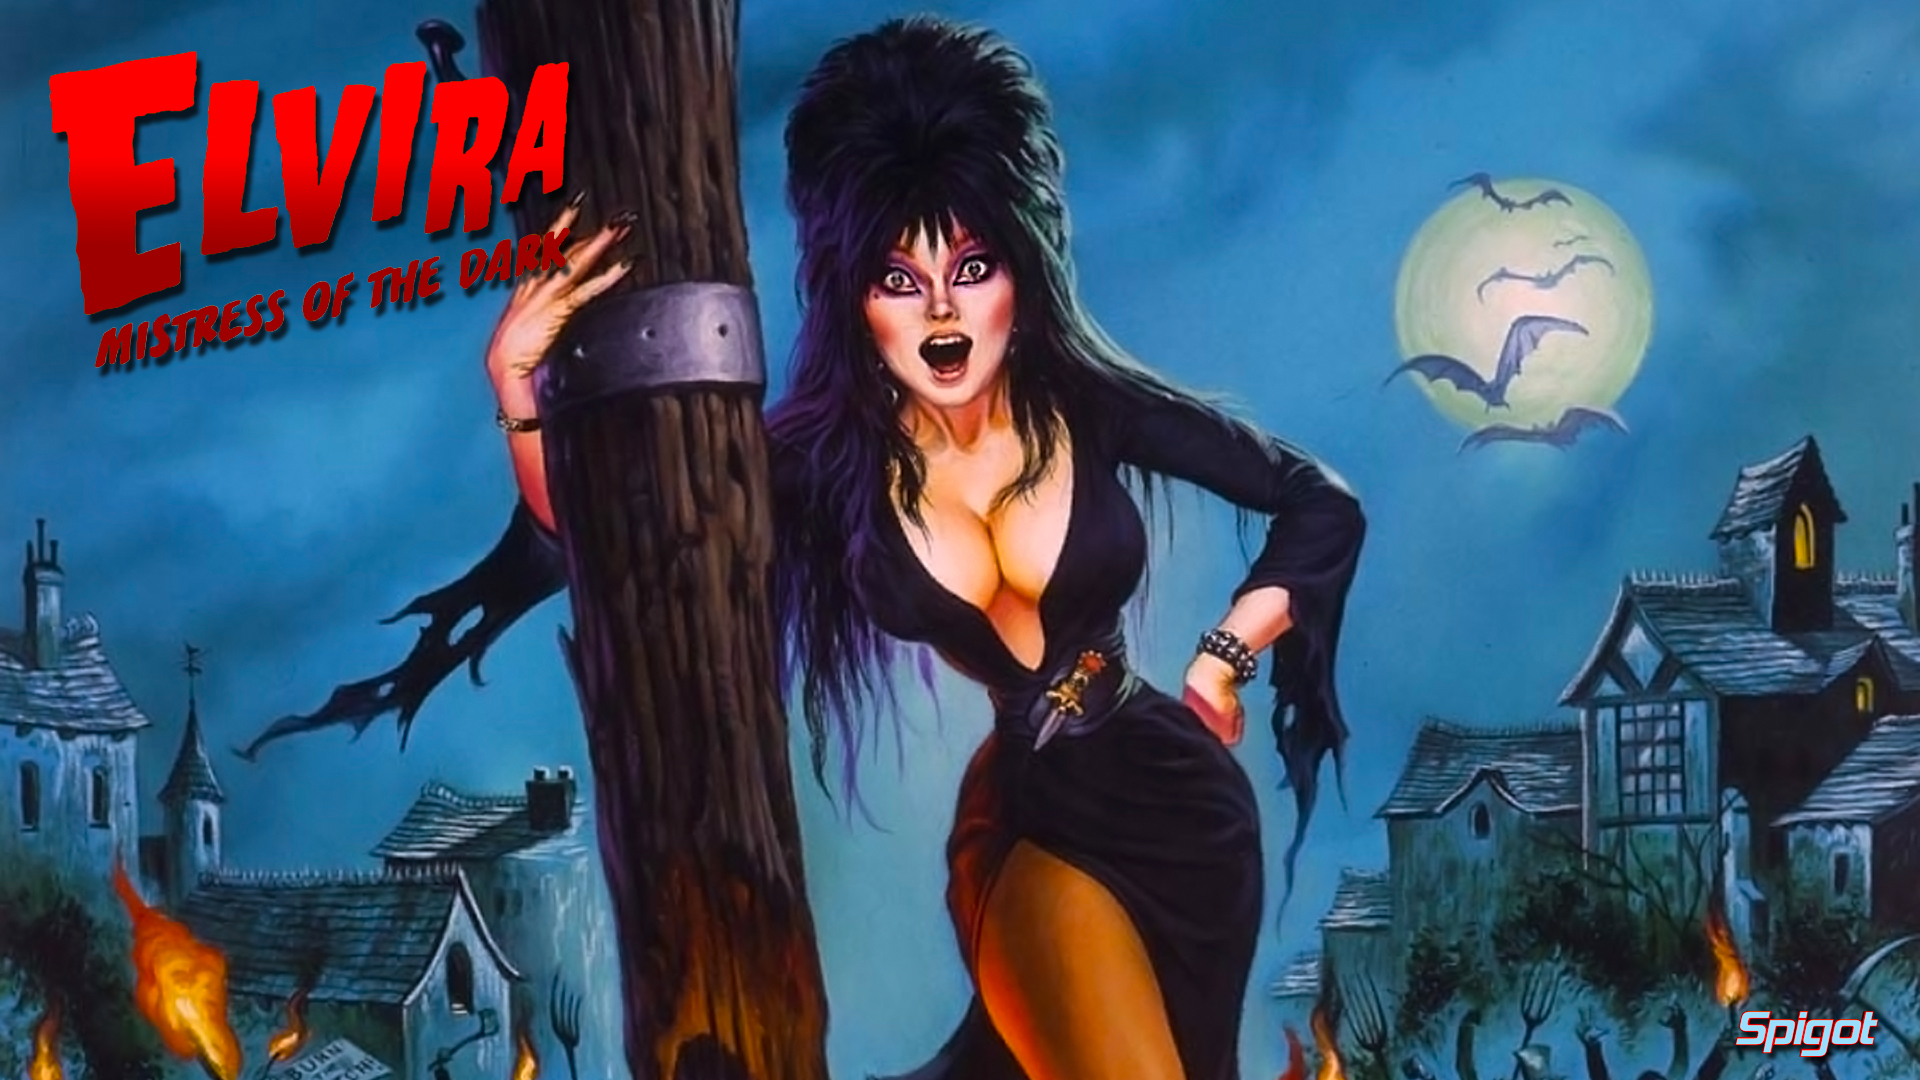 This wallpaper is from the comic based on the film Elvira Mistress 1920x1080